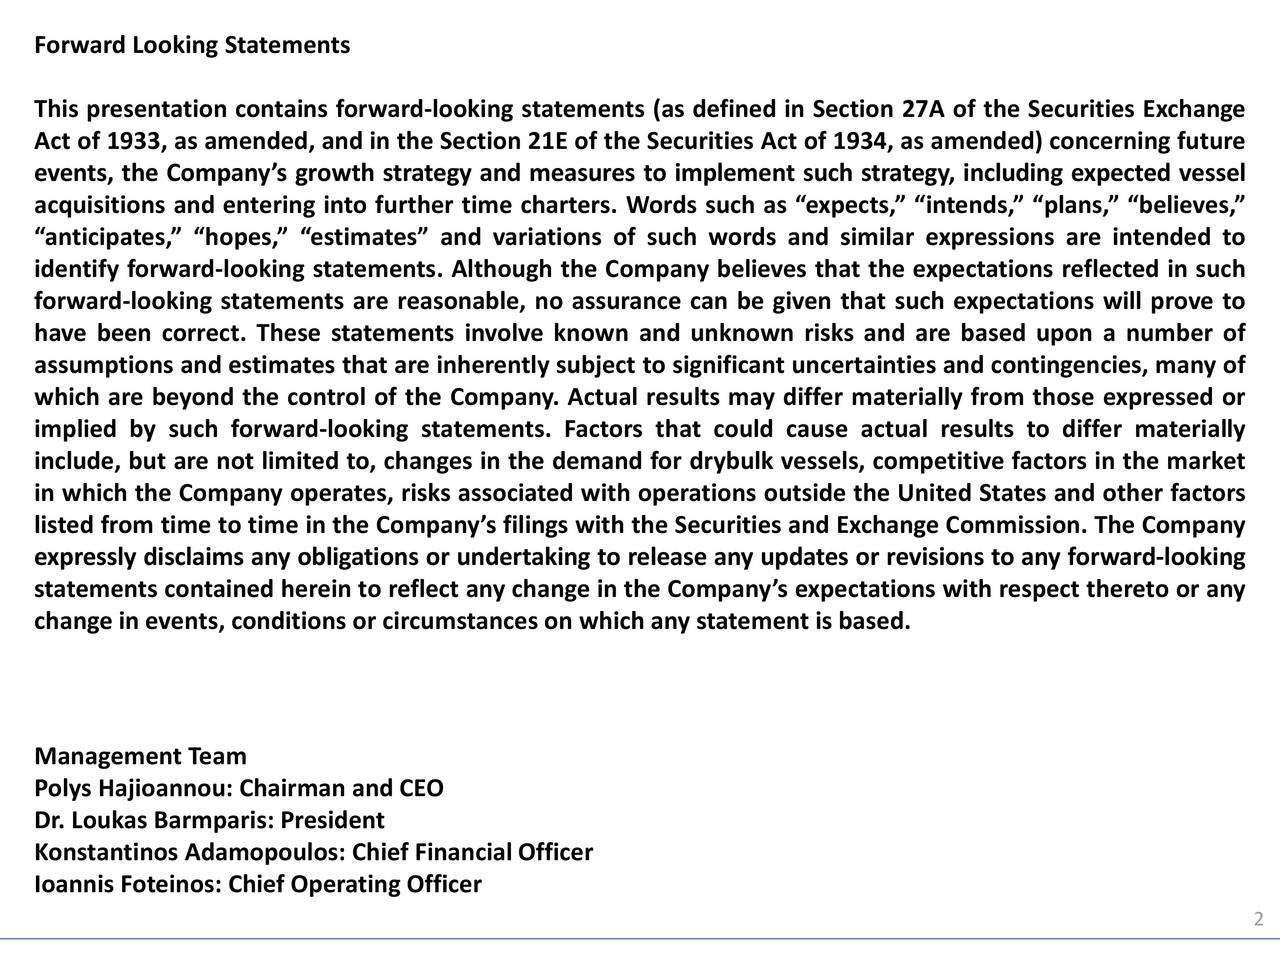 This presentation contains forward-looking statements (as defined in Section 27A of the Securities Exchange Act of 1933, as amended, and in the Section 21E of the Securities Act of 1934, as amended) concerning future events, the Companys growth strategy and measures to implement such strategy, including expected vessel acquisitions and entering into further time charters. Words such as expects, intends, plans, believes, anticipates, hopes, estimates and variations of such words and similar expressions are intended to identify forward-looking statements. Although the Company believes that the expectations reflected in such forward-looking statements are reasonable, no assurance can be given that such expectations will prove to have been correct. These statements involve known and unknown risks and are based upon a number of assumptions and estimates that are inherently subject to significant uncertainties and contingencies, many of which are beyond the control of the Company. Actual results may differ materially from those expressed or implied by such forward-looking statements. Factors that could cause actual results to differ materially include, but are not limited to, changes in the demand for drybulk vessels, competitive factors in the market in which the Company operates, risks associated with operations outside the United States and other factors listed from time to time in the Companys filings with the Securities and Exchange Commission. The Company expressly disclaims any obligations or undertaking to release any updates or revisions to any forward-looking statements contained herein to reflect any change in the Companys expectations with respect thereto or any change in events, conditions or circumstances on which any statement is based. Management Team Polys Hajioannou: Chairman and CEO Dr. Loukas Barmparis: President Konstantinos Adamopoulos: Chief Financial Officer Ioannis Foteinos: Chief Operating Officer 2